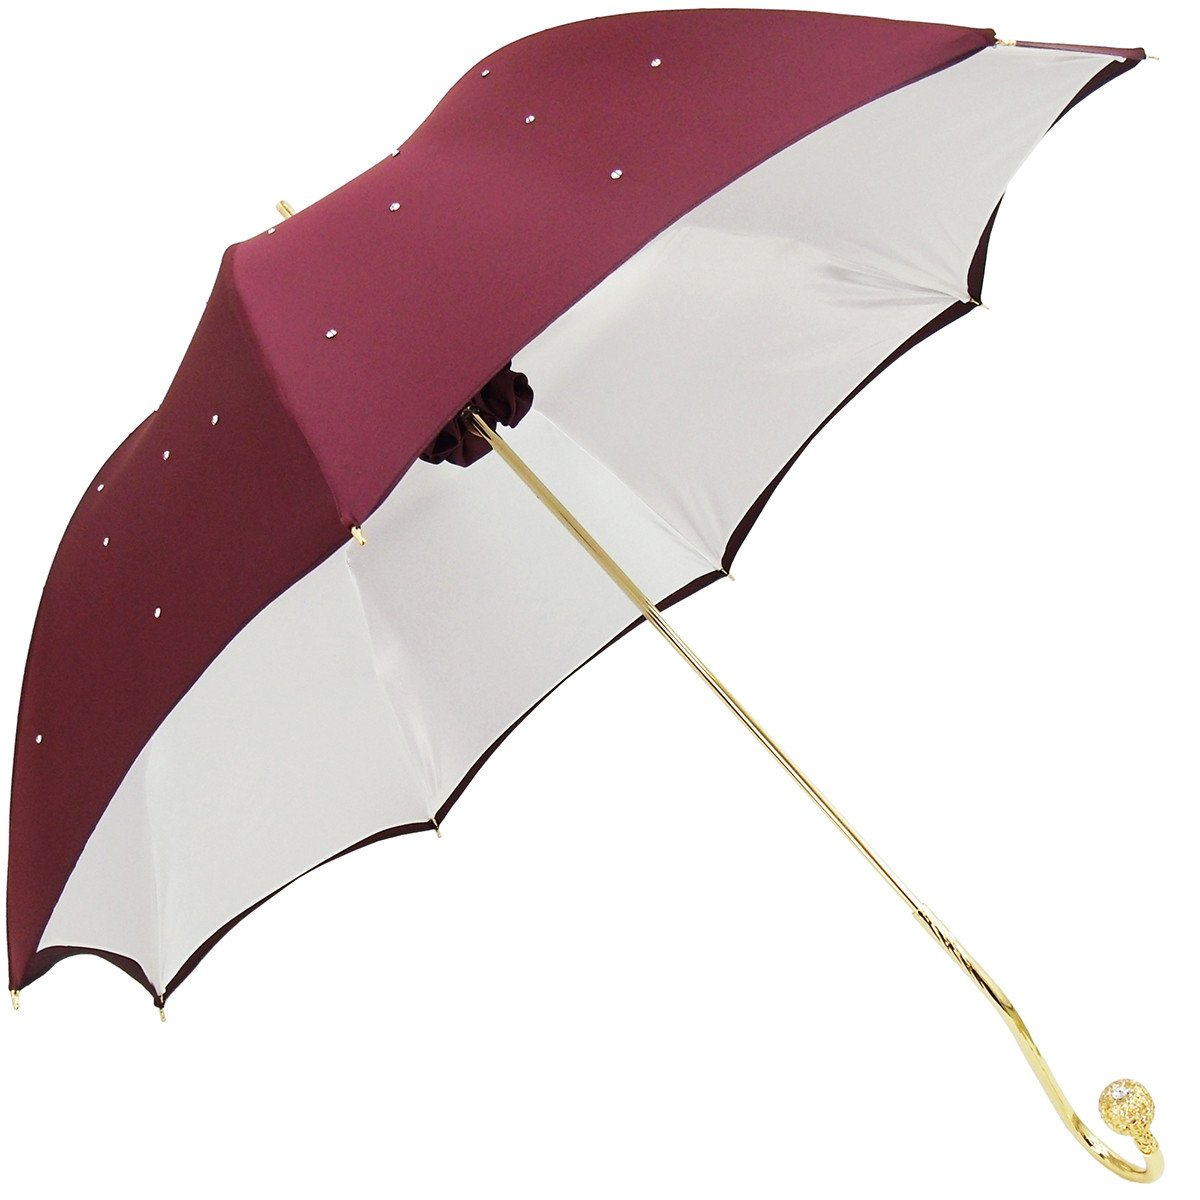 HIGH QUALITY DOUBLE CLOTH BURGUNDY CRYSTALS UMBRELLAS